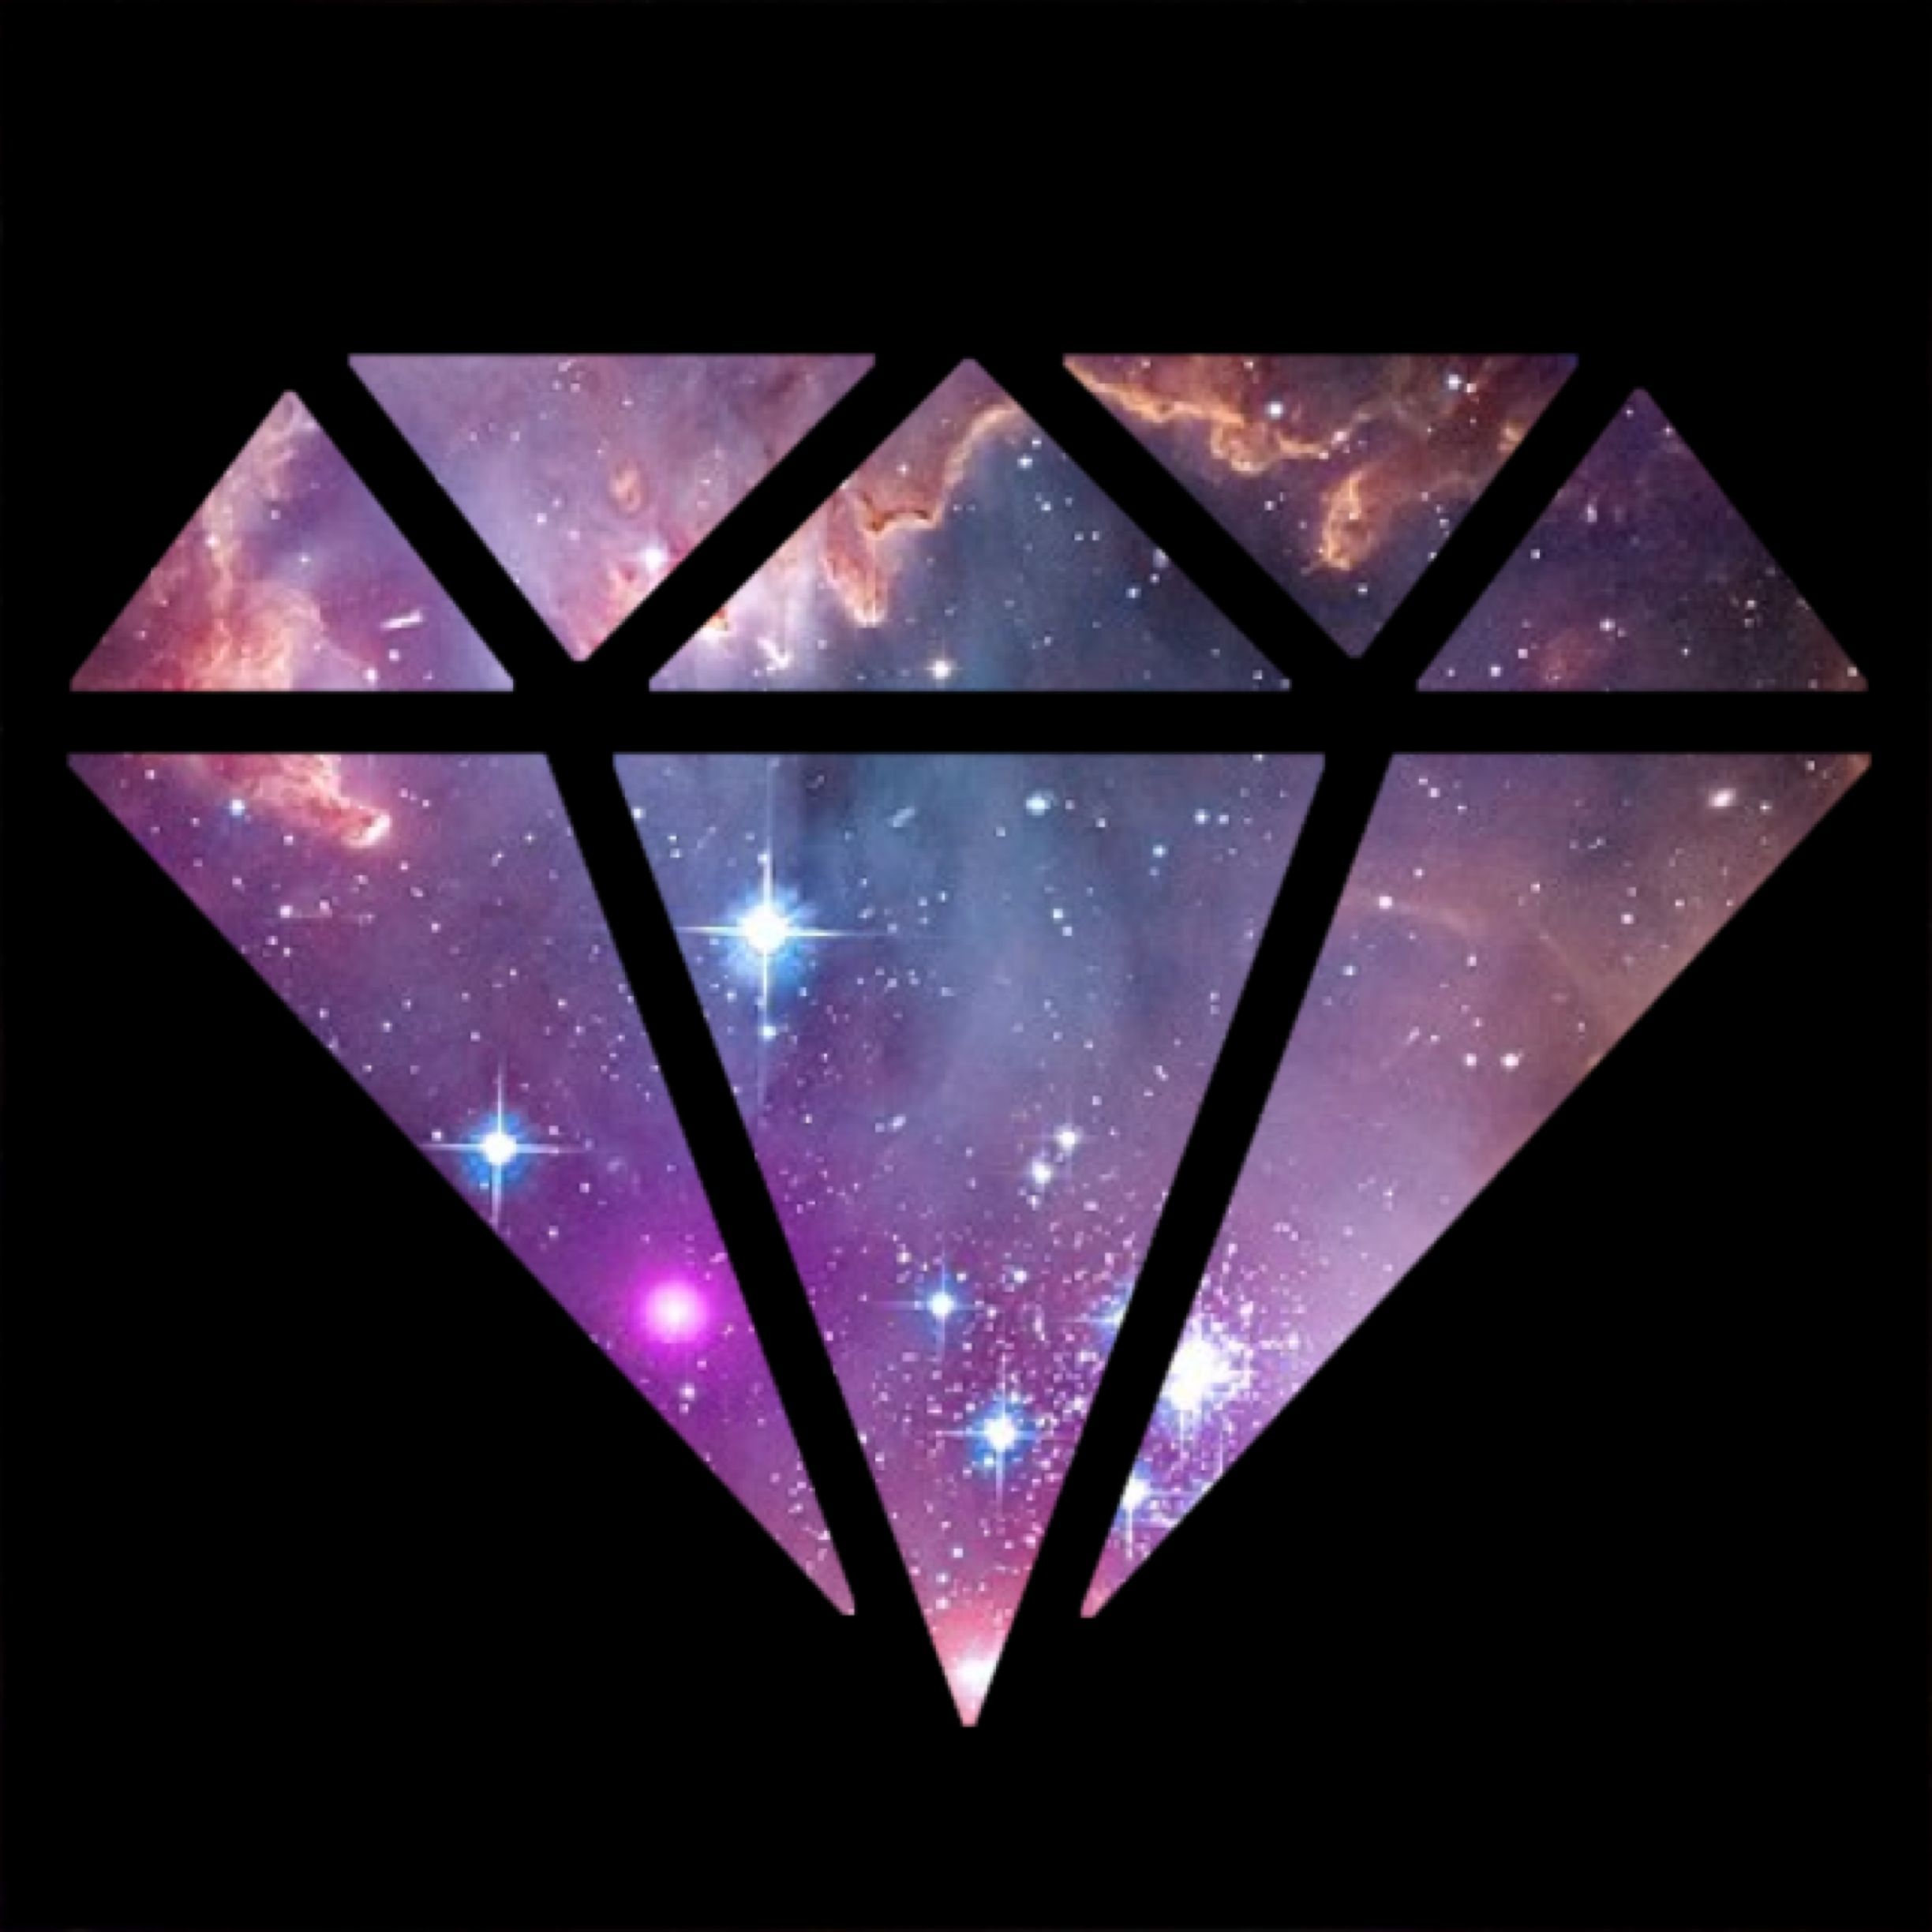 Diamond galaxy. Supply co wallpapers top